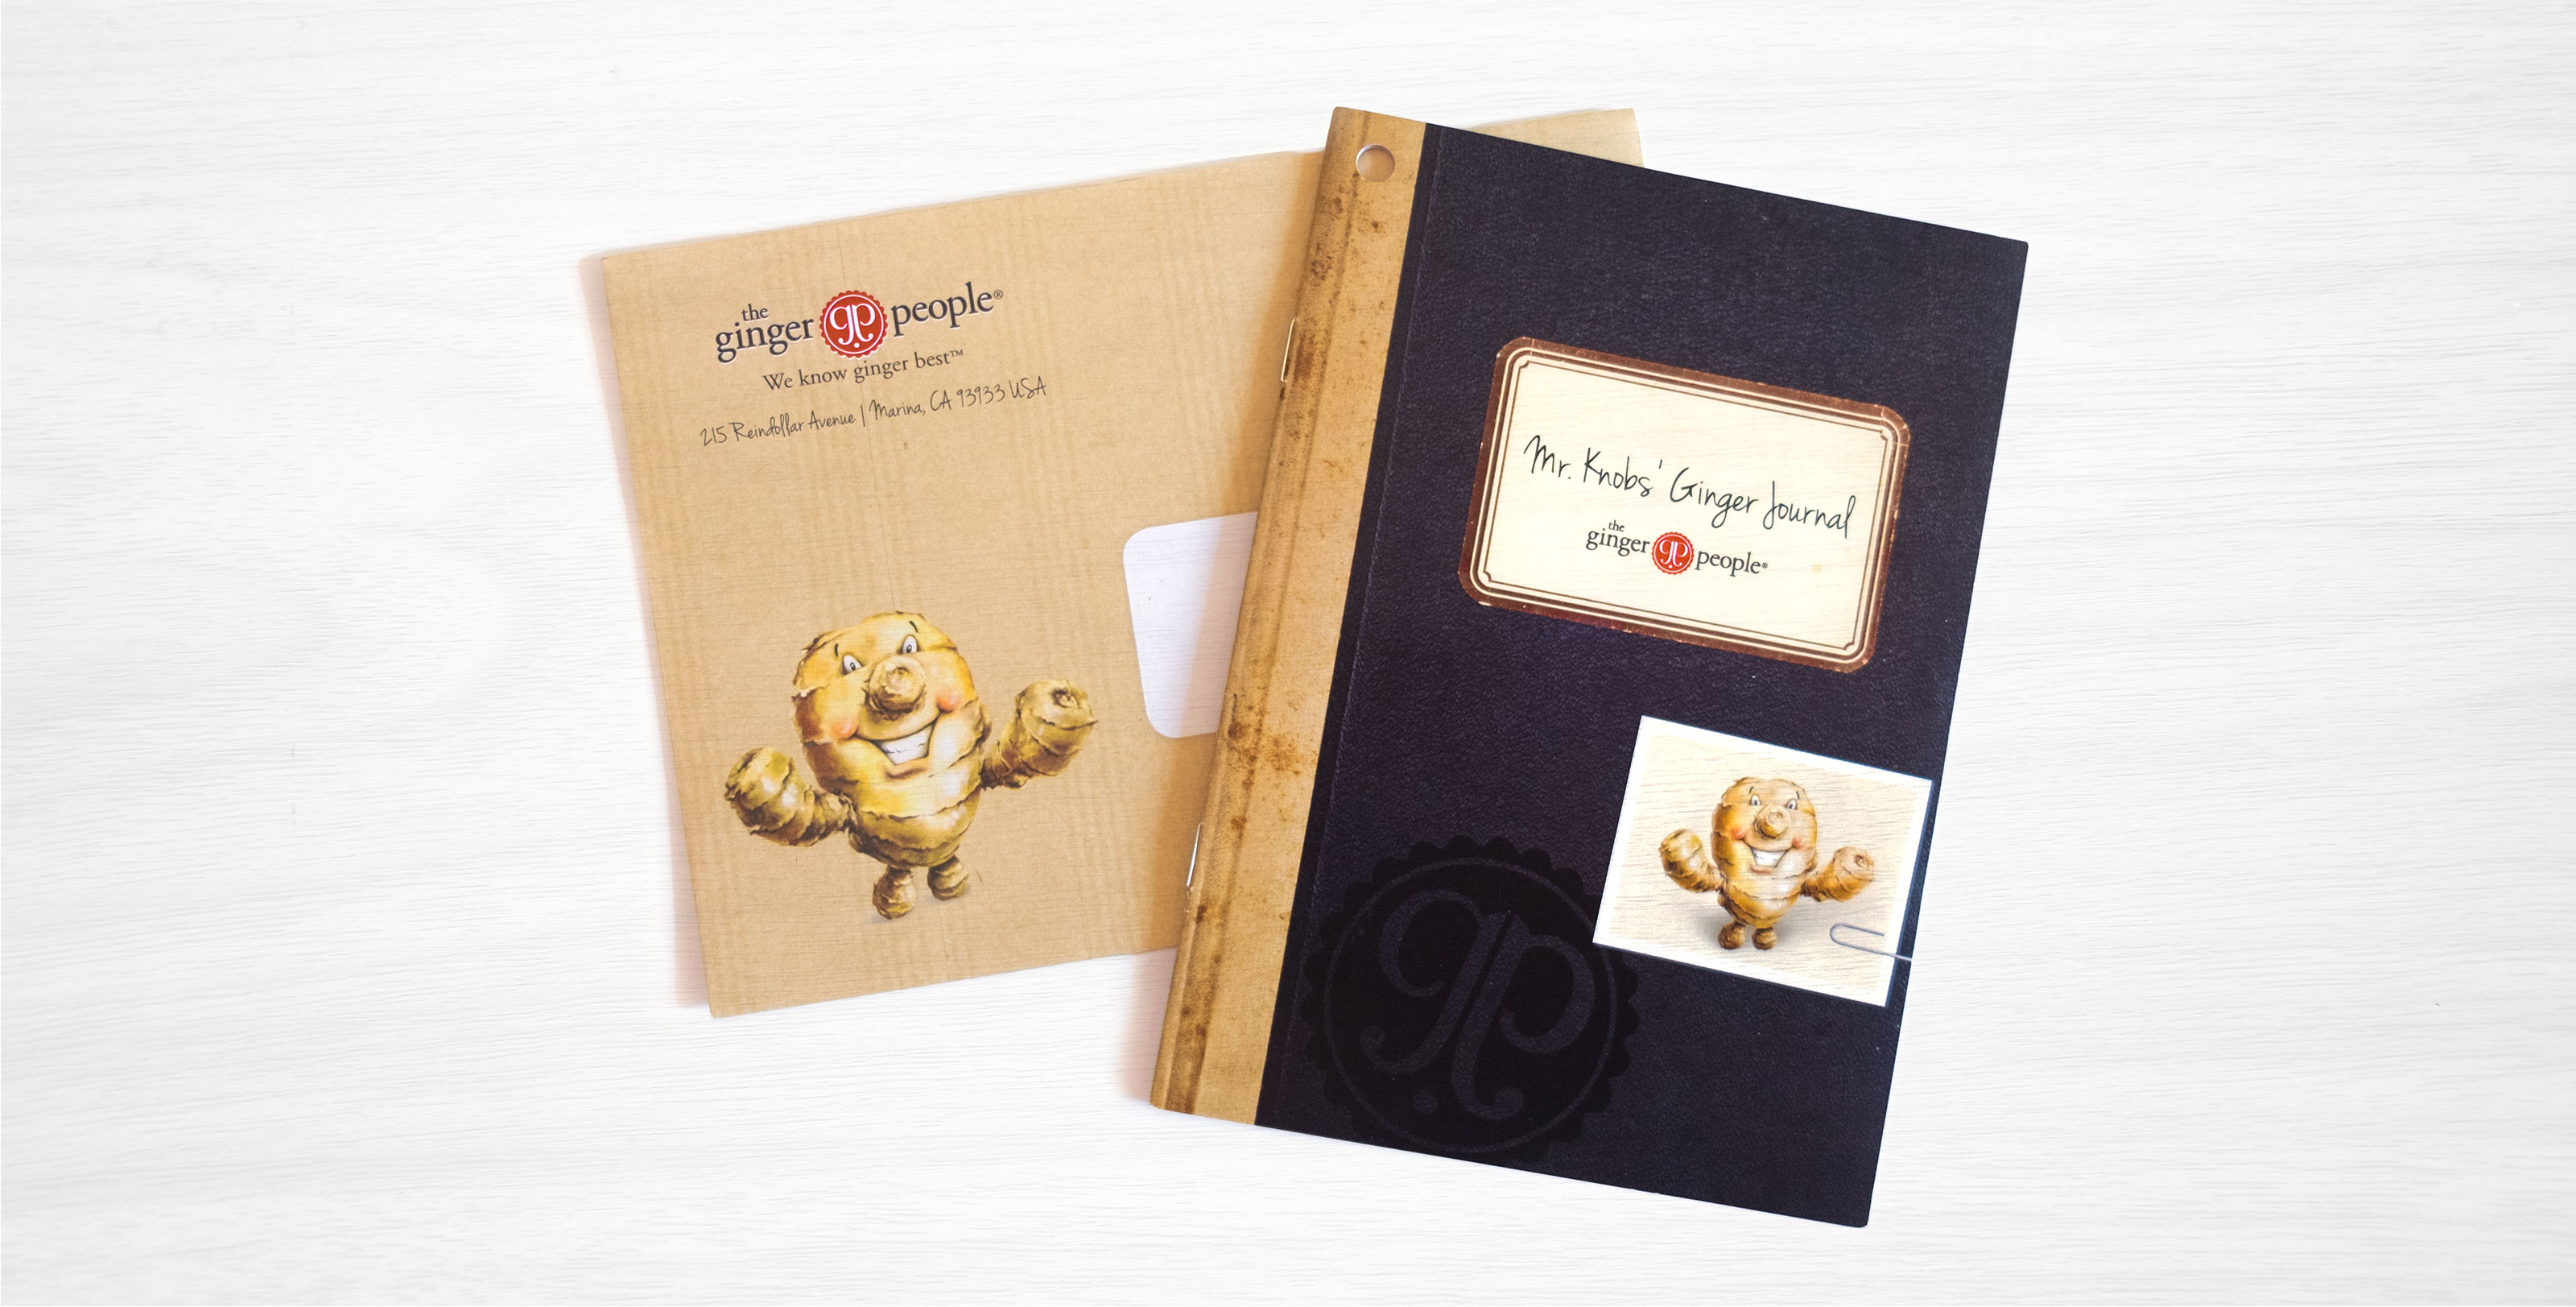 The Ginger People Journal Design